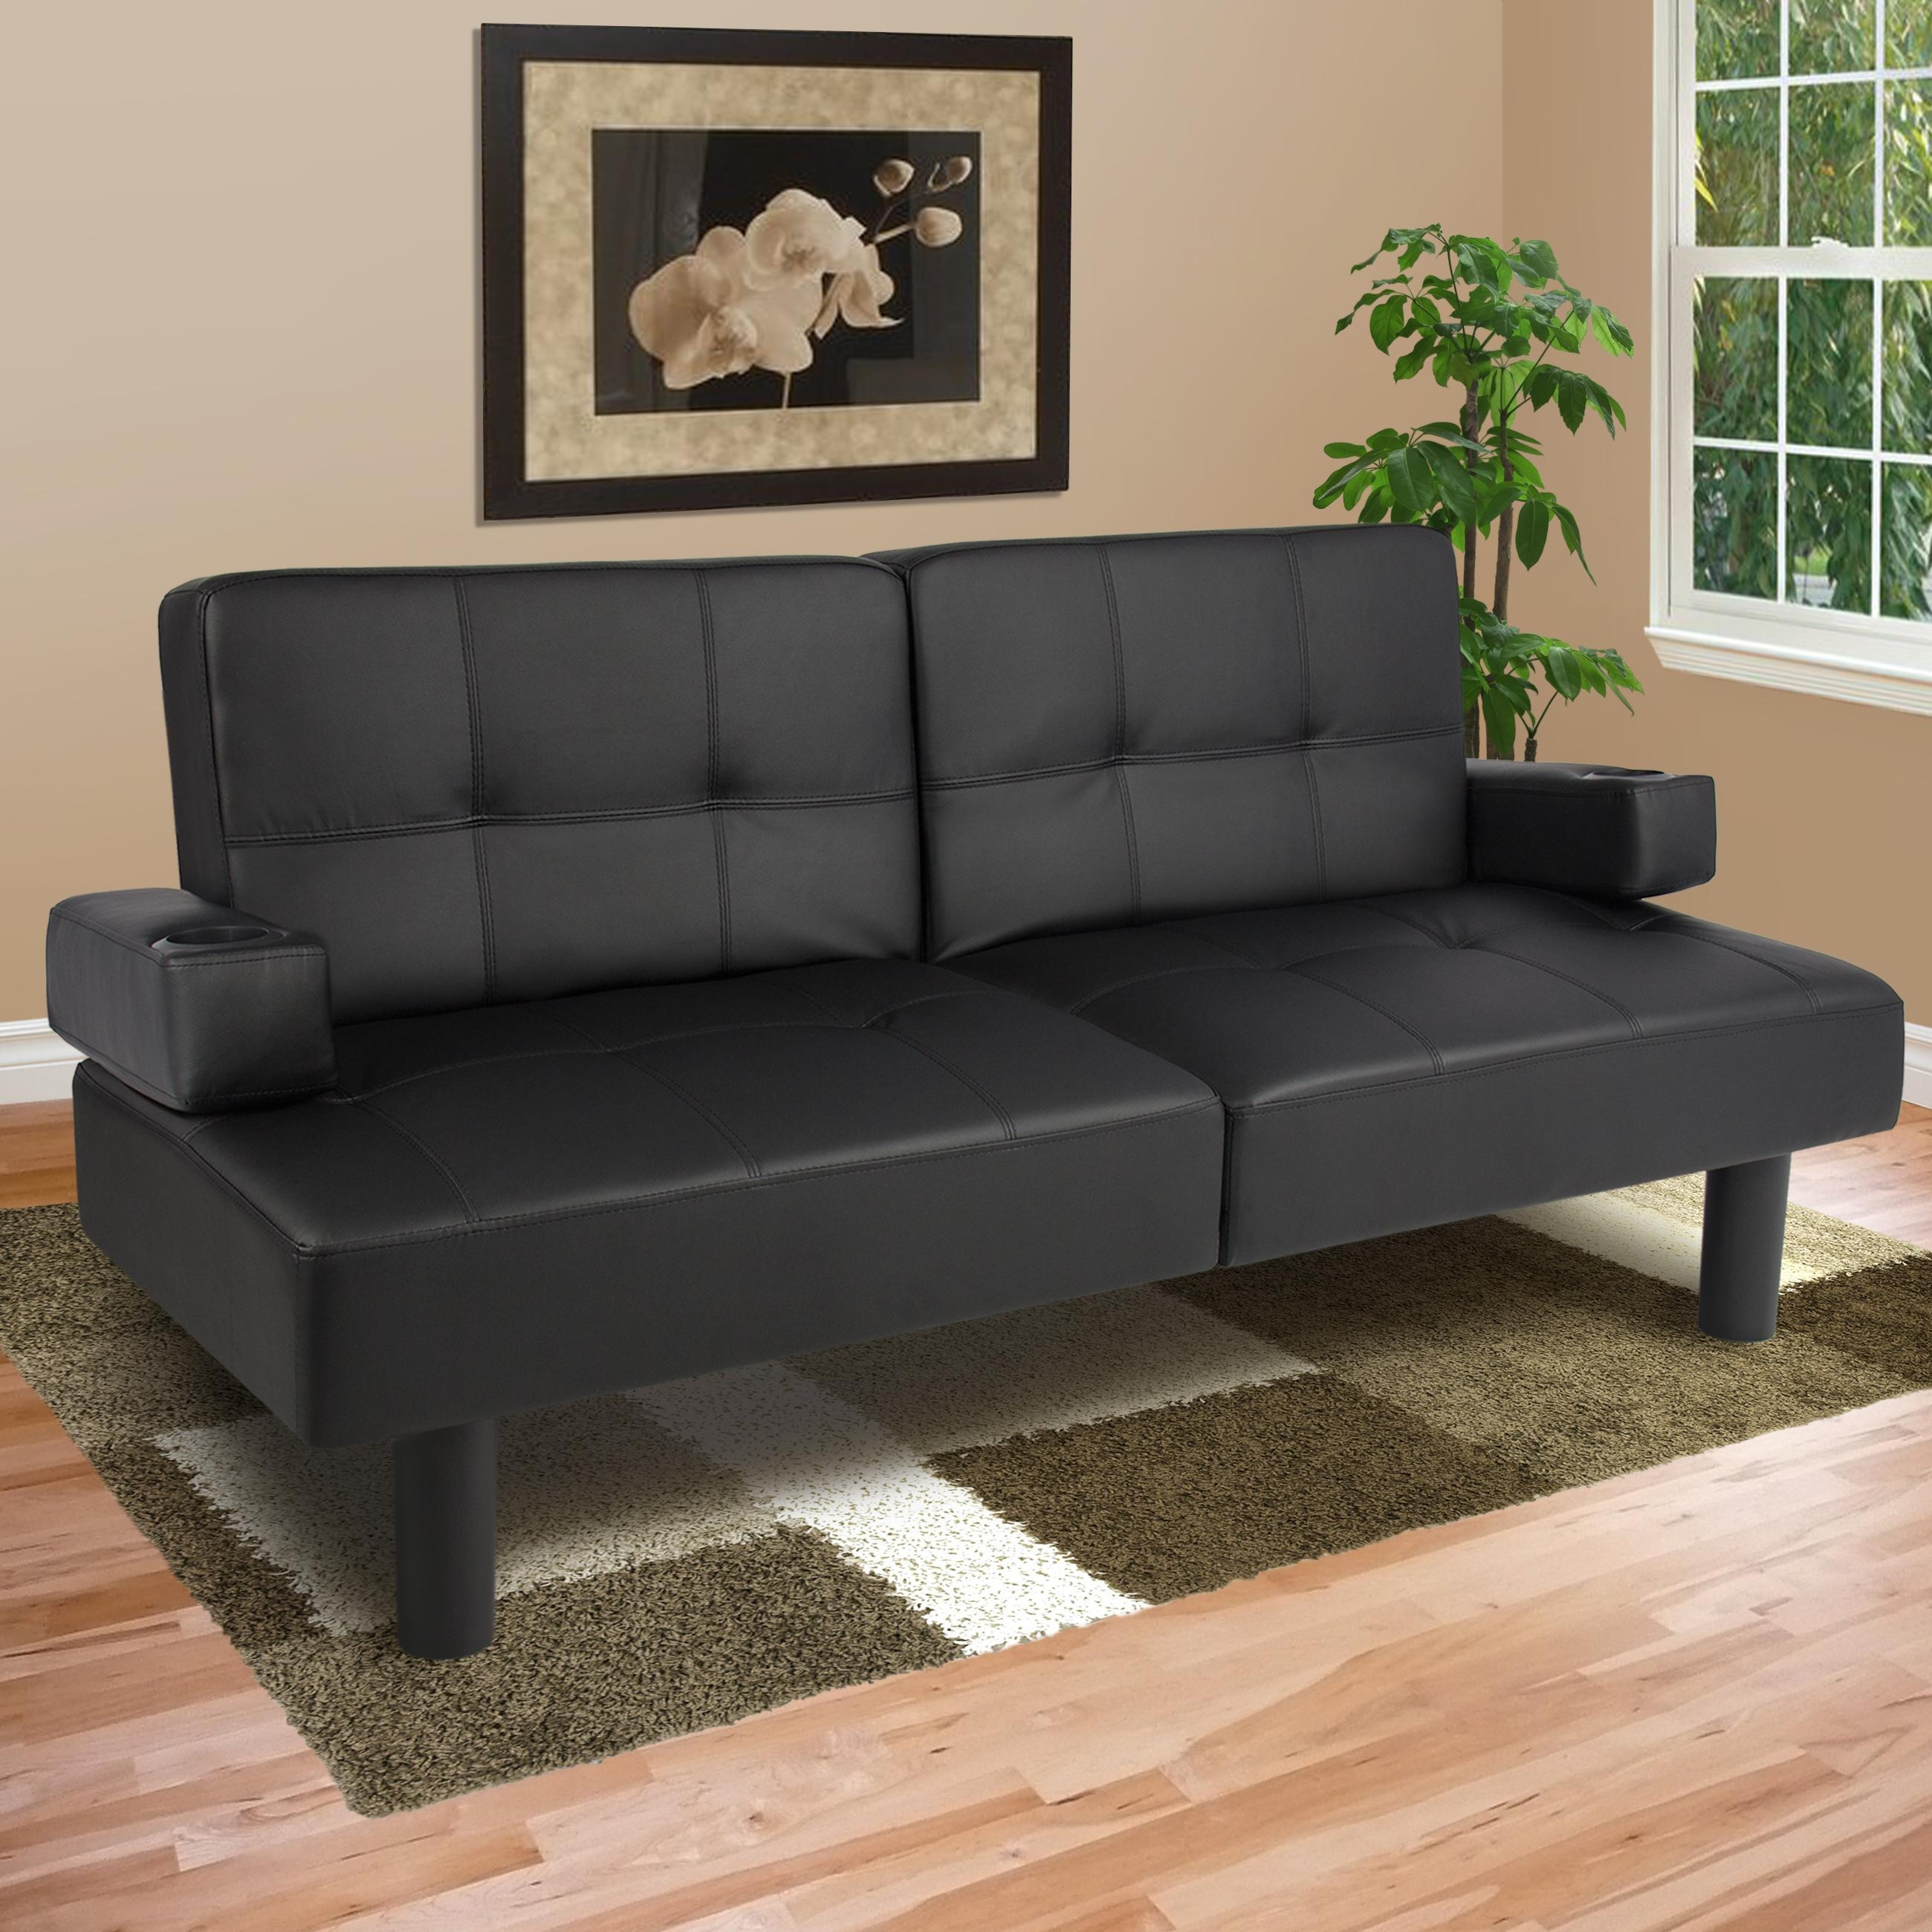 Leather Faux Fold Down Futon Sofa Bed Couch Sleeper Furniture Throughout Leather Fouton Sofas (Image 15 of 20)